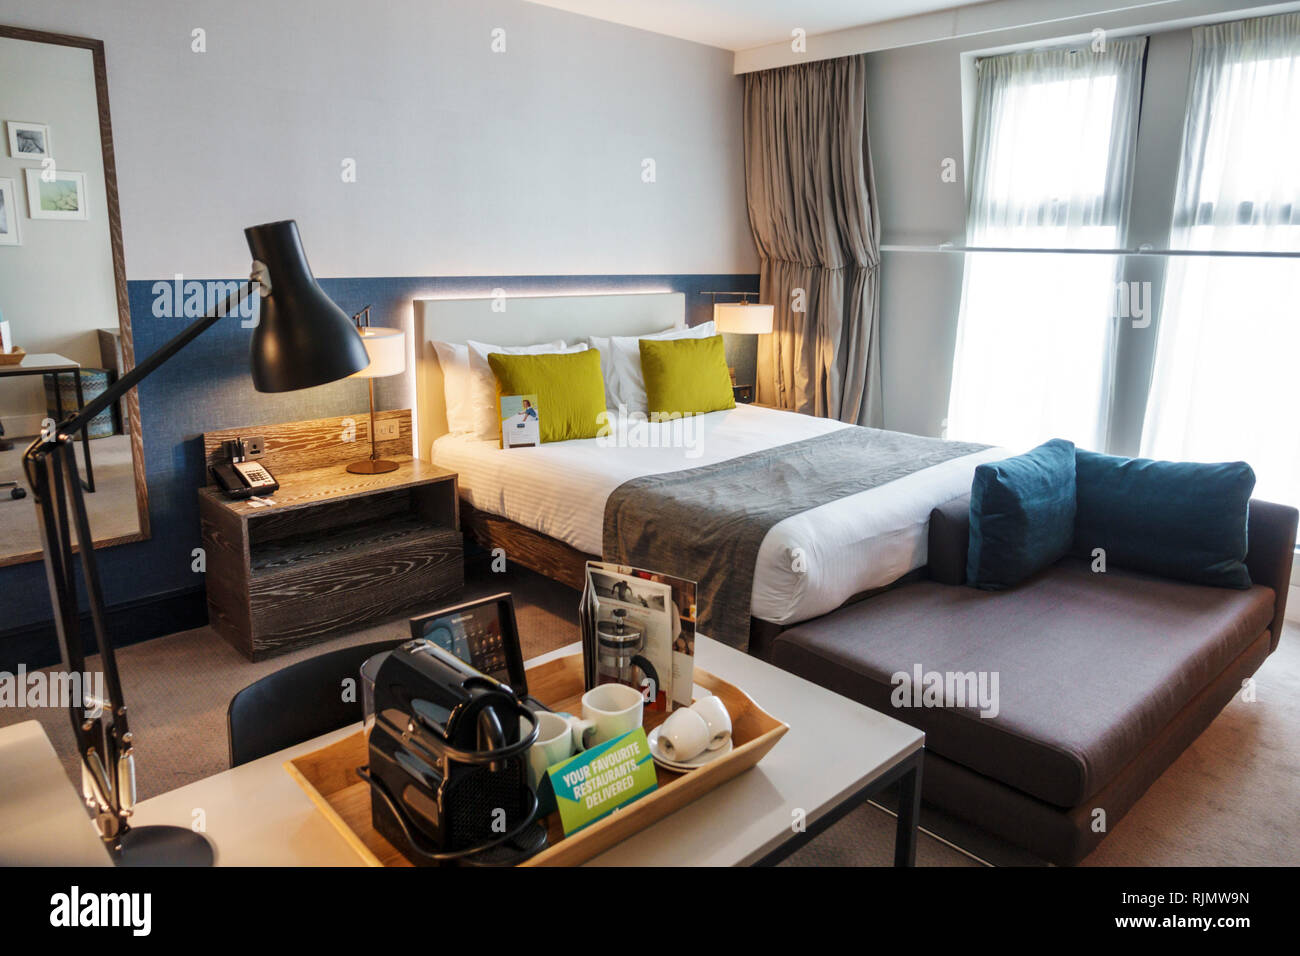 London England United Kingdom Great Britain Lambeth Staybridge Suites London Vauxhall hotel guest room bed desk clean room coffee maker tray contempor - Stock Image